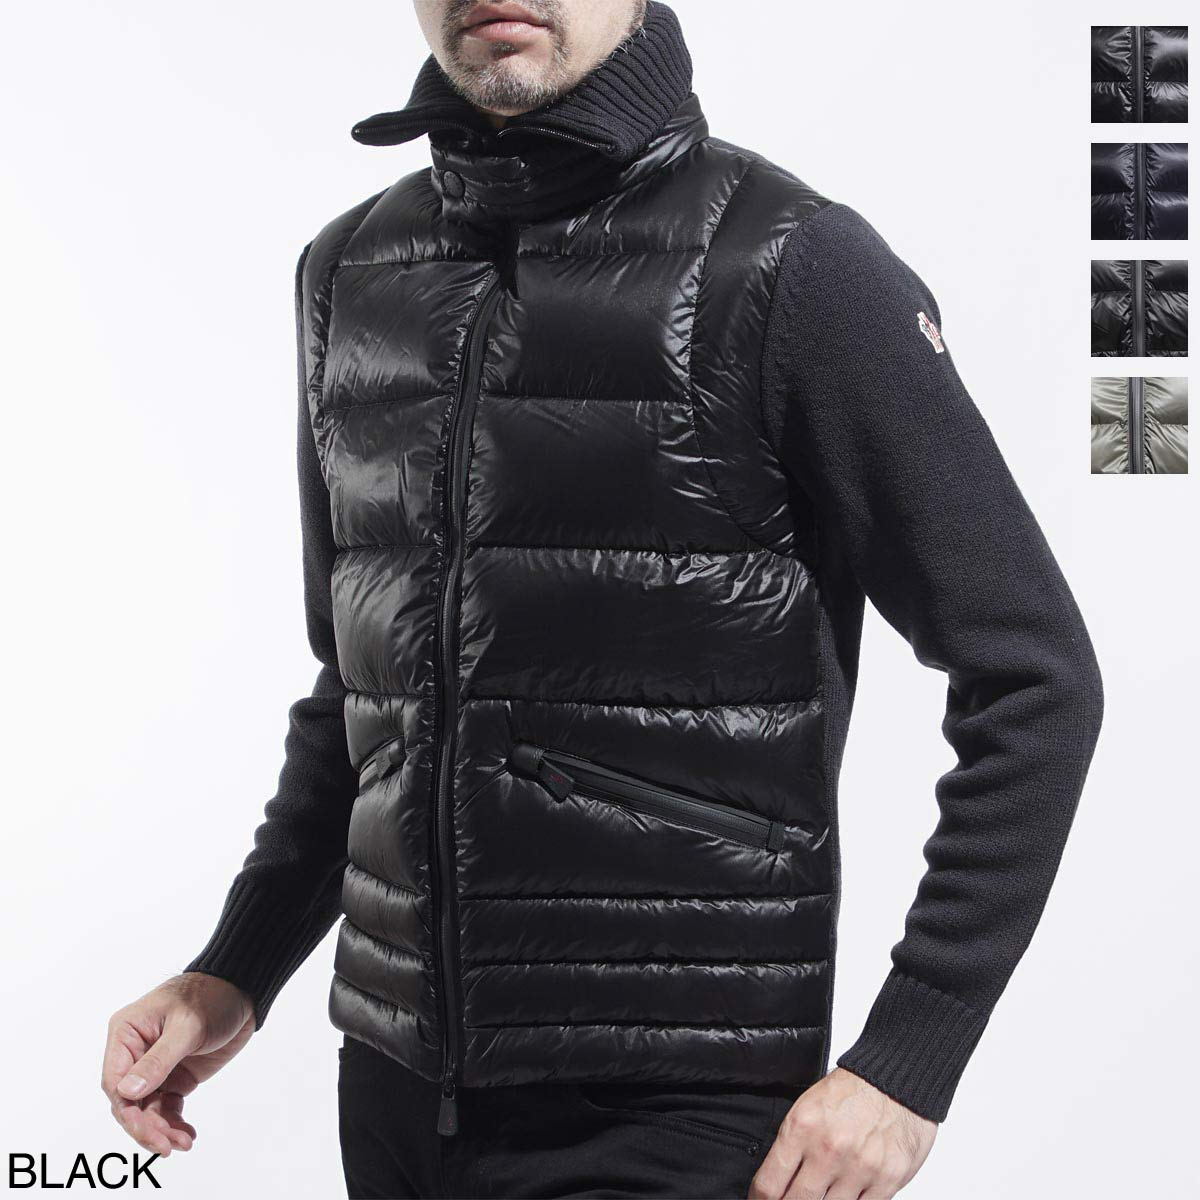 Monk rail MONCLER knit combination down jacket men down outer winter clothing blouson 9421600 94778 989 GRENOBLE Grenoble